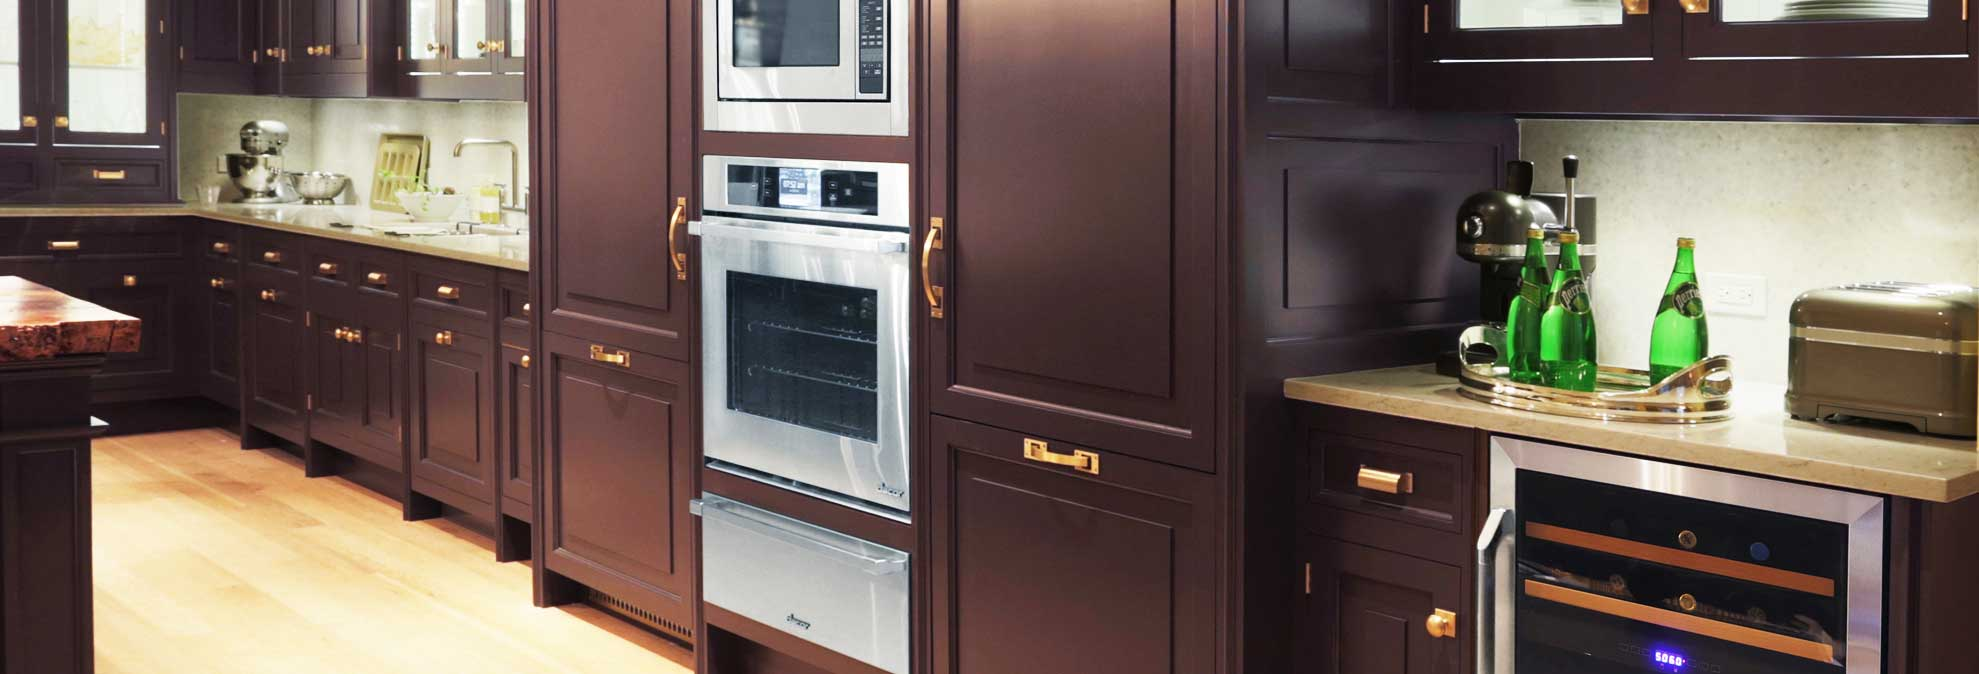 Uncategorized Kitchen Cabinets best kitchen cabinet buying guide consumer reports